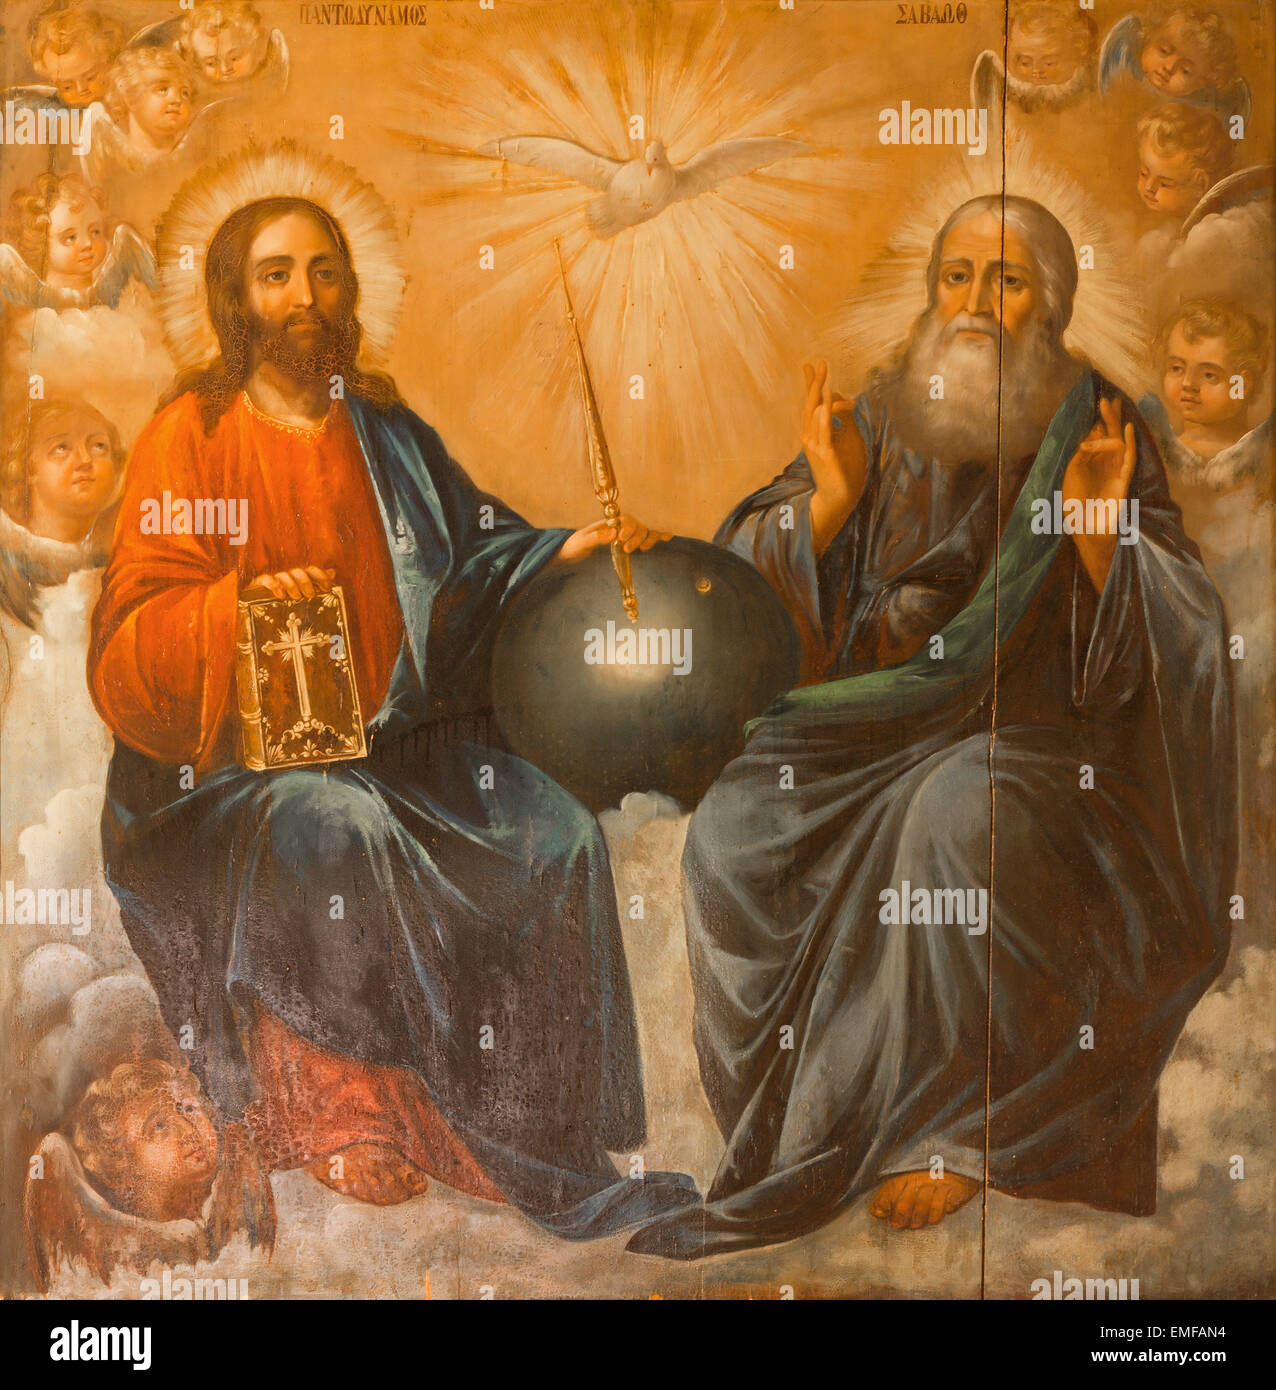 JERUSALEM, ISRAEL - MARCH 3, 2015: The Holy Trinity painting from Church of the Holy Sepulchre by unknown artist - Stock Image